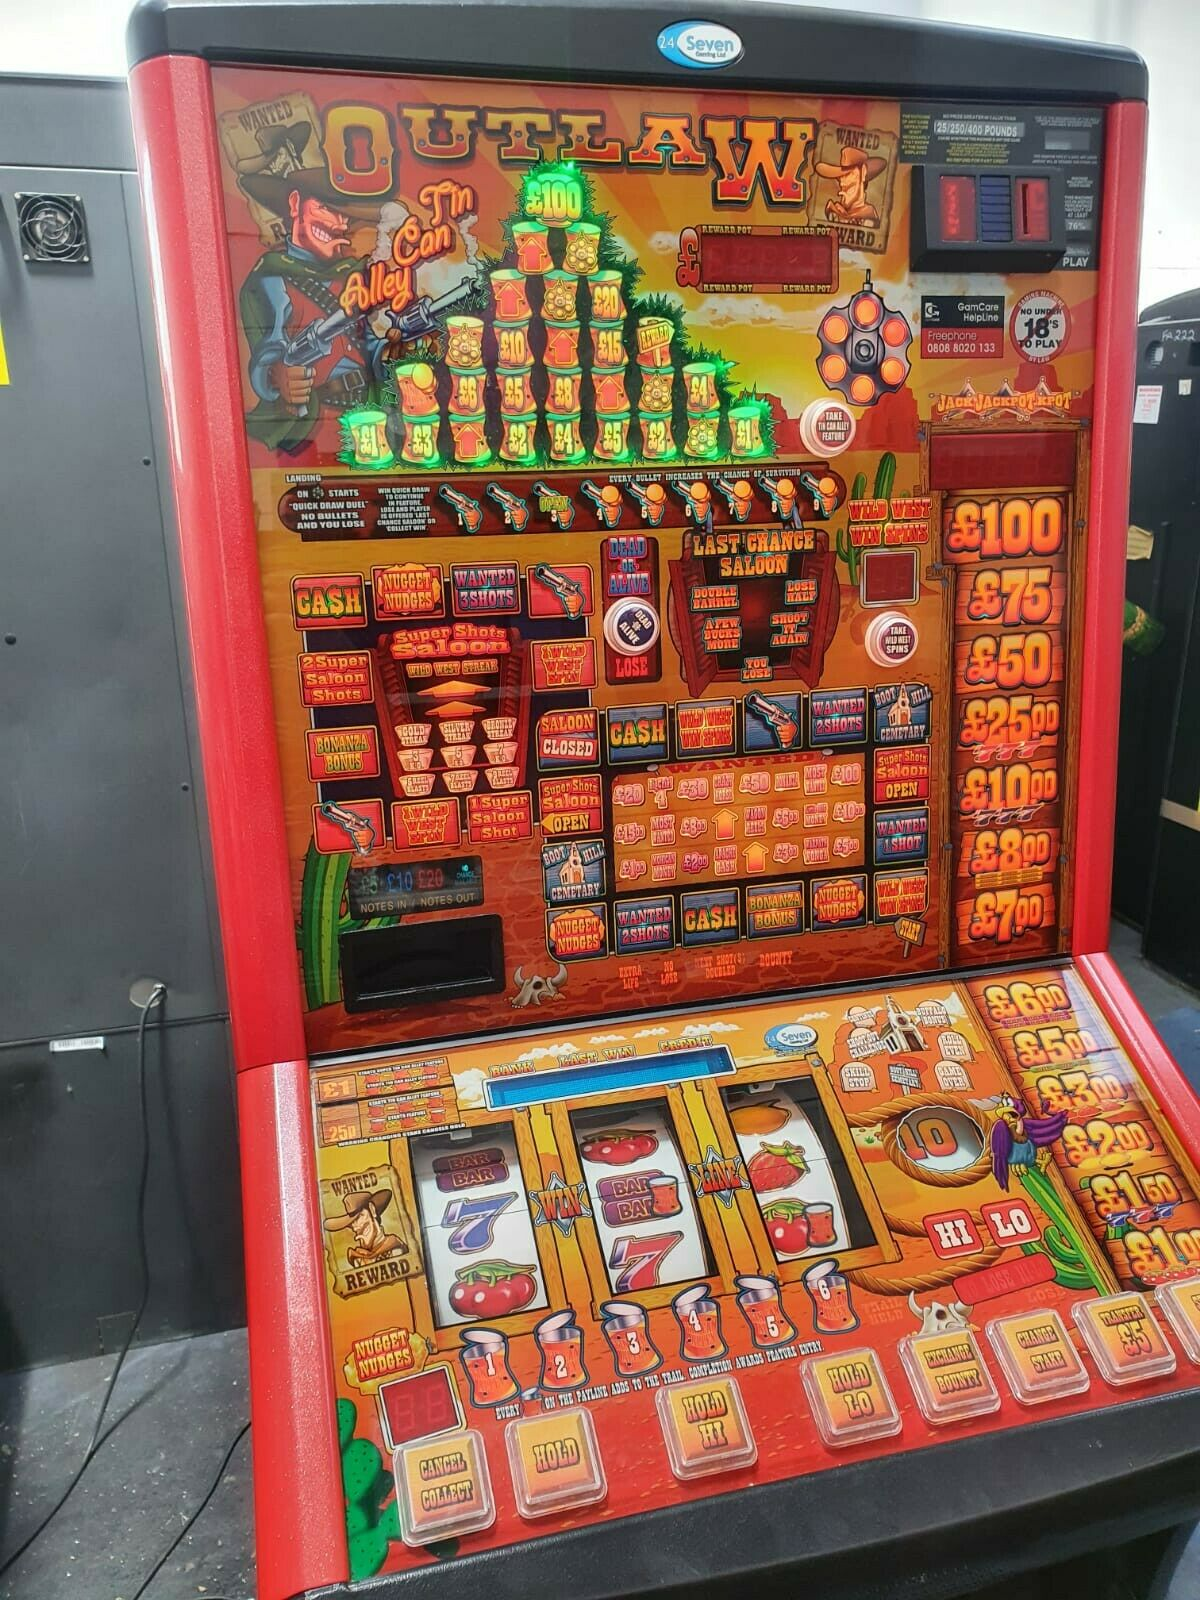 FRUIT MACHINE - OUTLAW TIN CAN ALLEY CLUB - JACKPOT - NEW READY